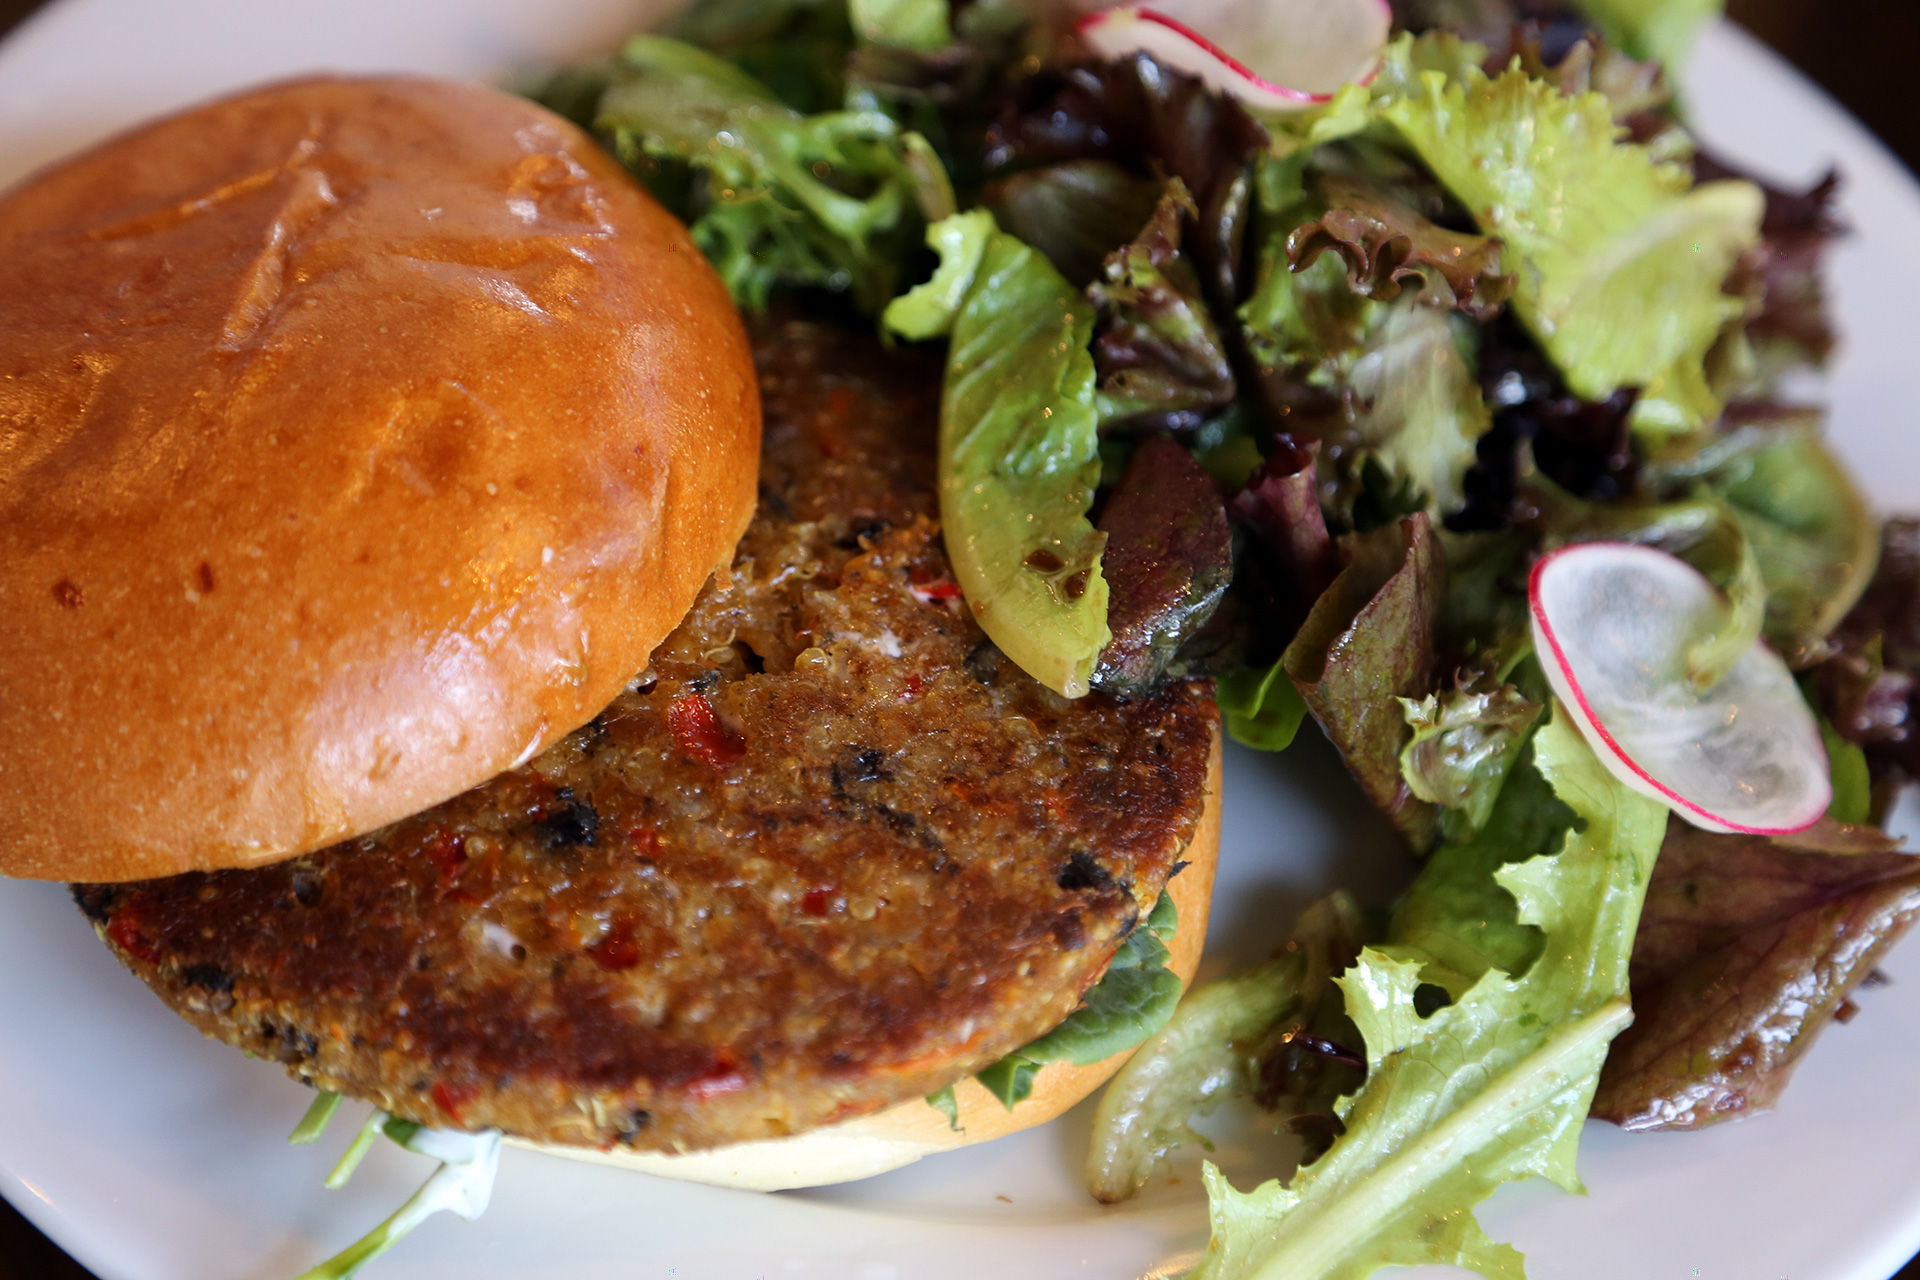 House-made Quinoa Burger